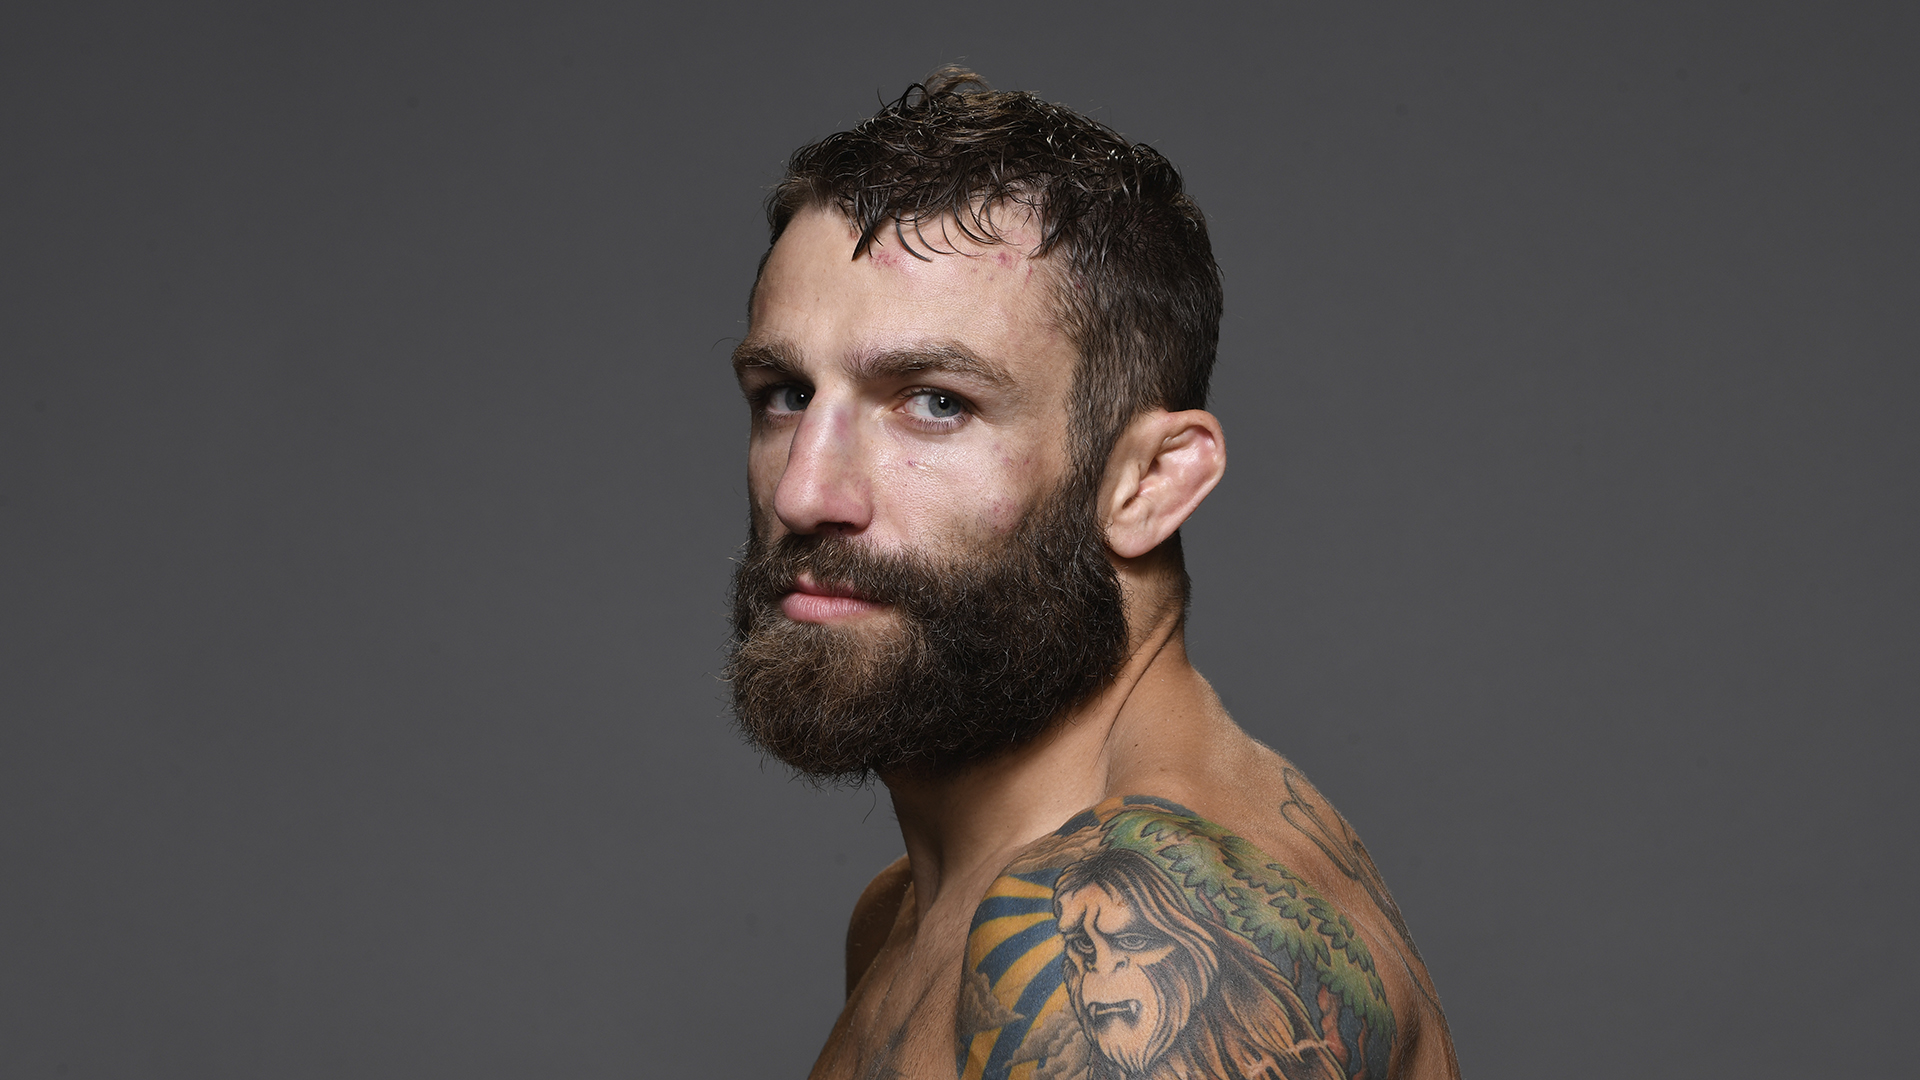 Michael Chiesa poses for a portrait during the UFC 239 event at T-Mobile Arena on July 6, 2019 in Las Vegas, Nevada. (Photo by Mike Roach/Zuffa LLC)